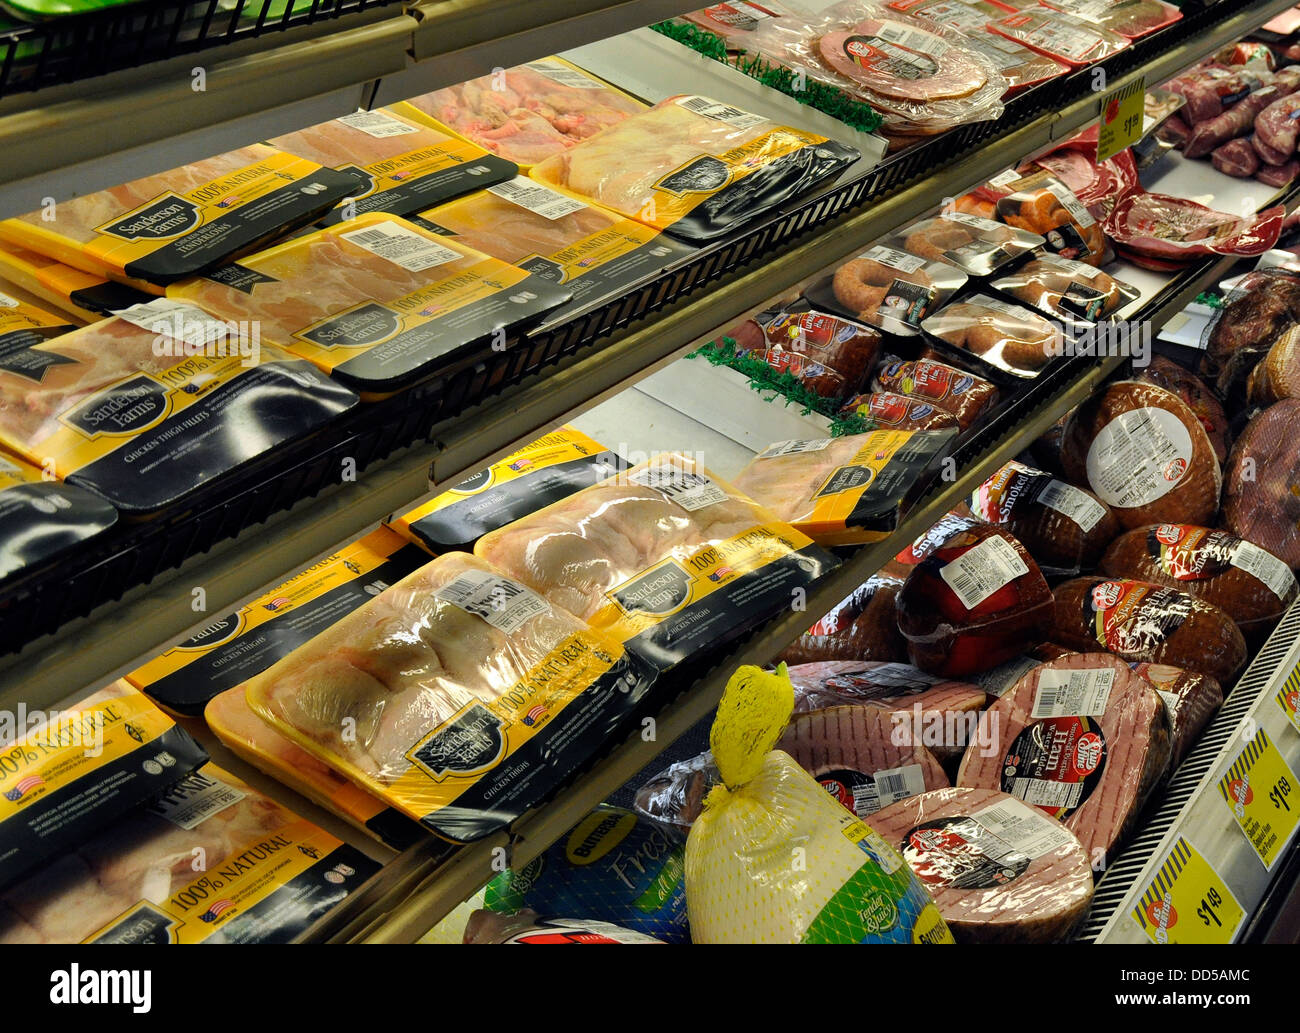 Meat and poultry counter at a grocery store - Stock Image